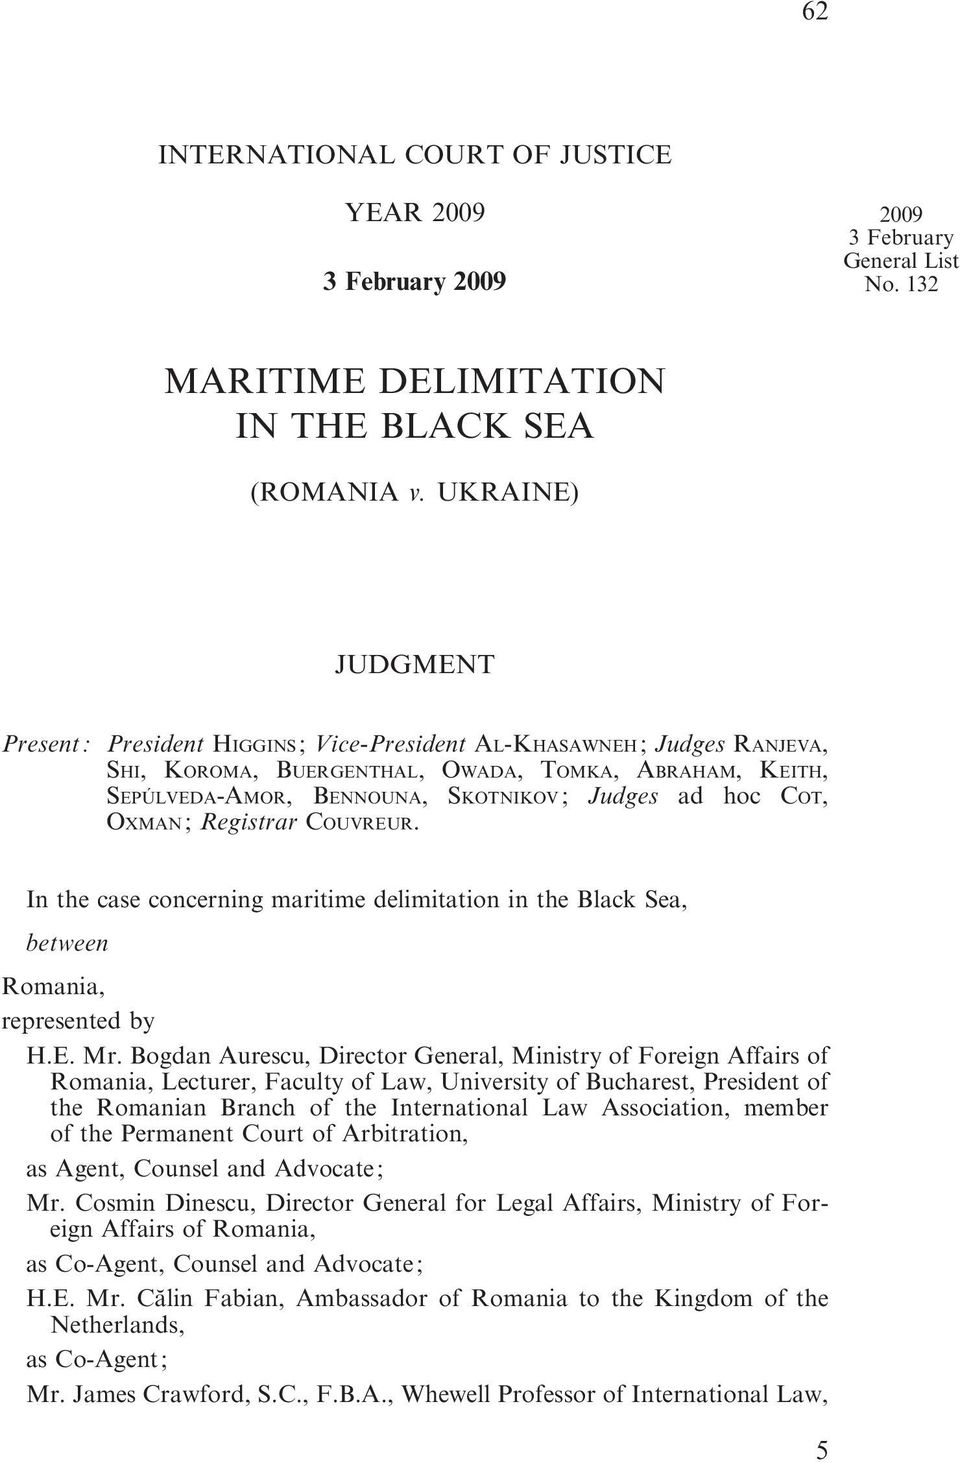 COT, OXMAN; Registrar COUVREUR. In the case concerning maritime delimitation in the Black Sea, between Romania, represented by H.E. Mr.